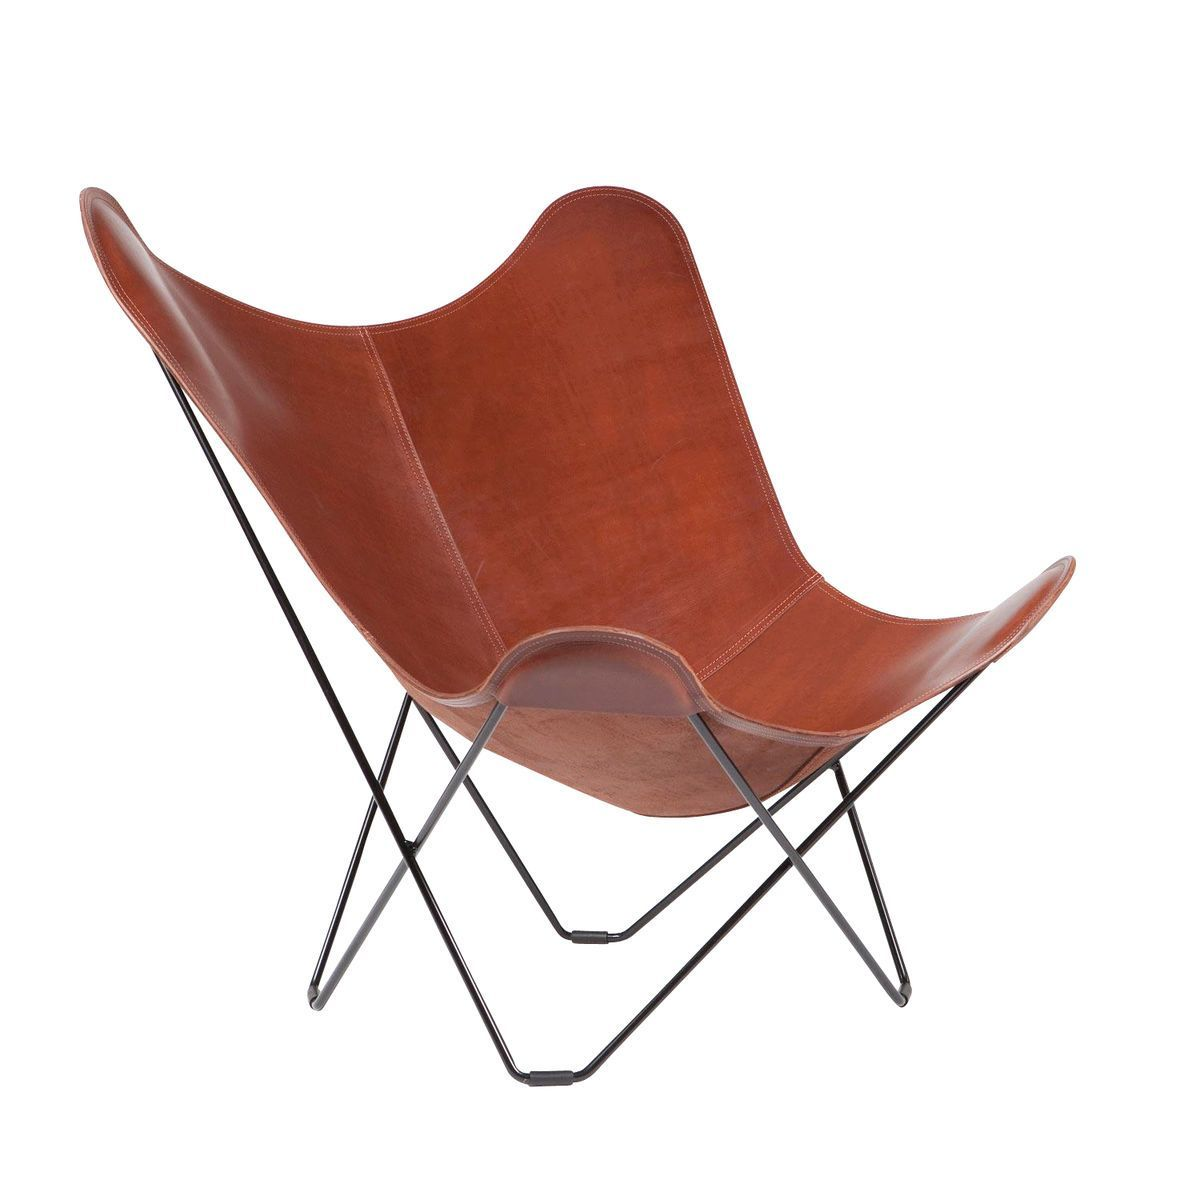 Pampa Mariposa Butterfly Chair cuero